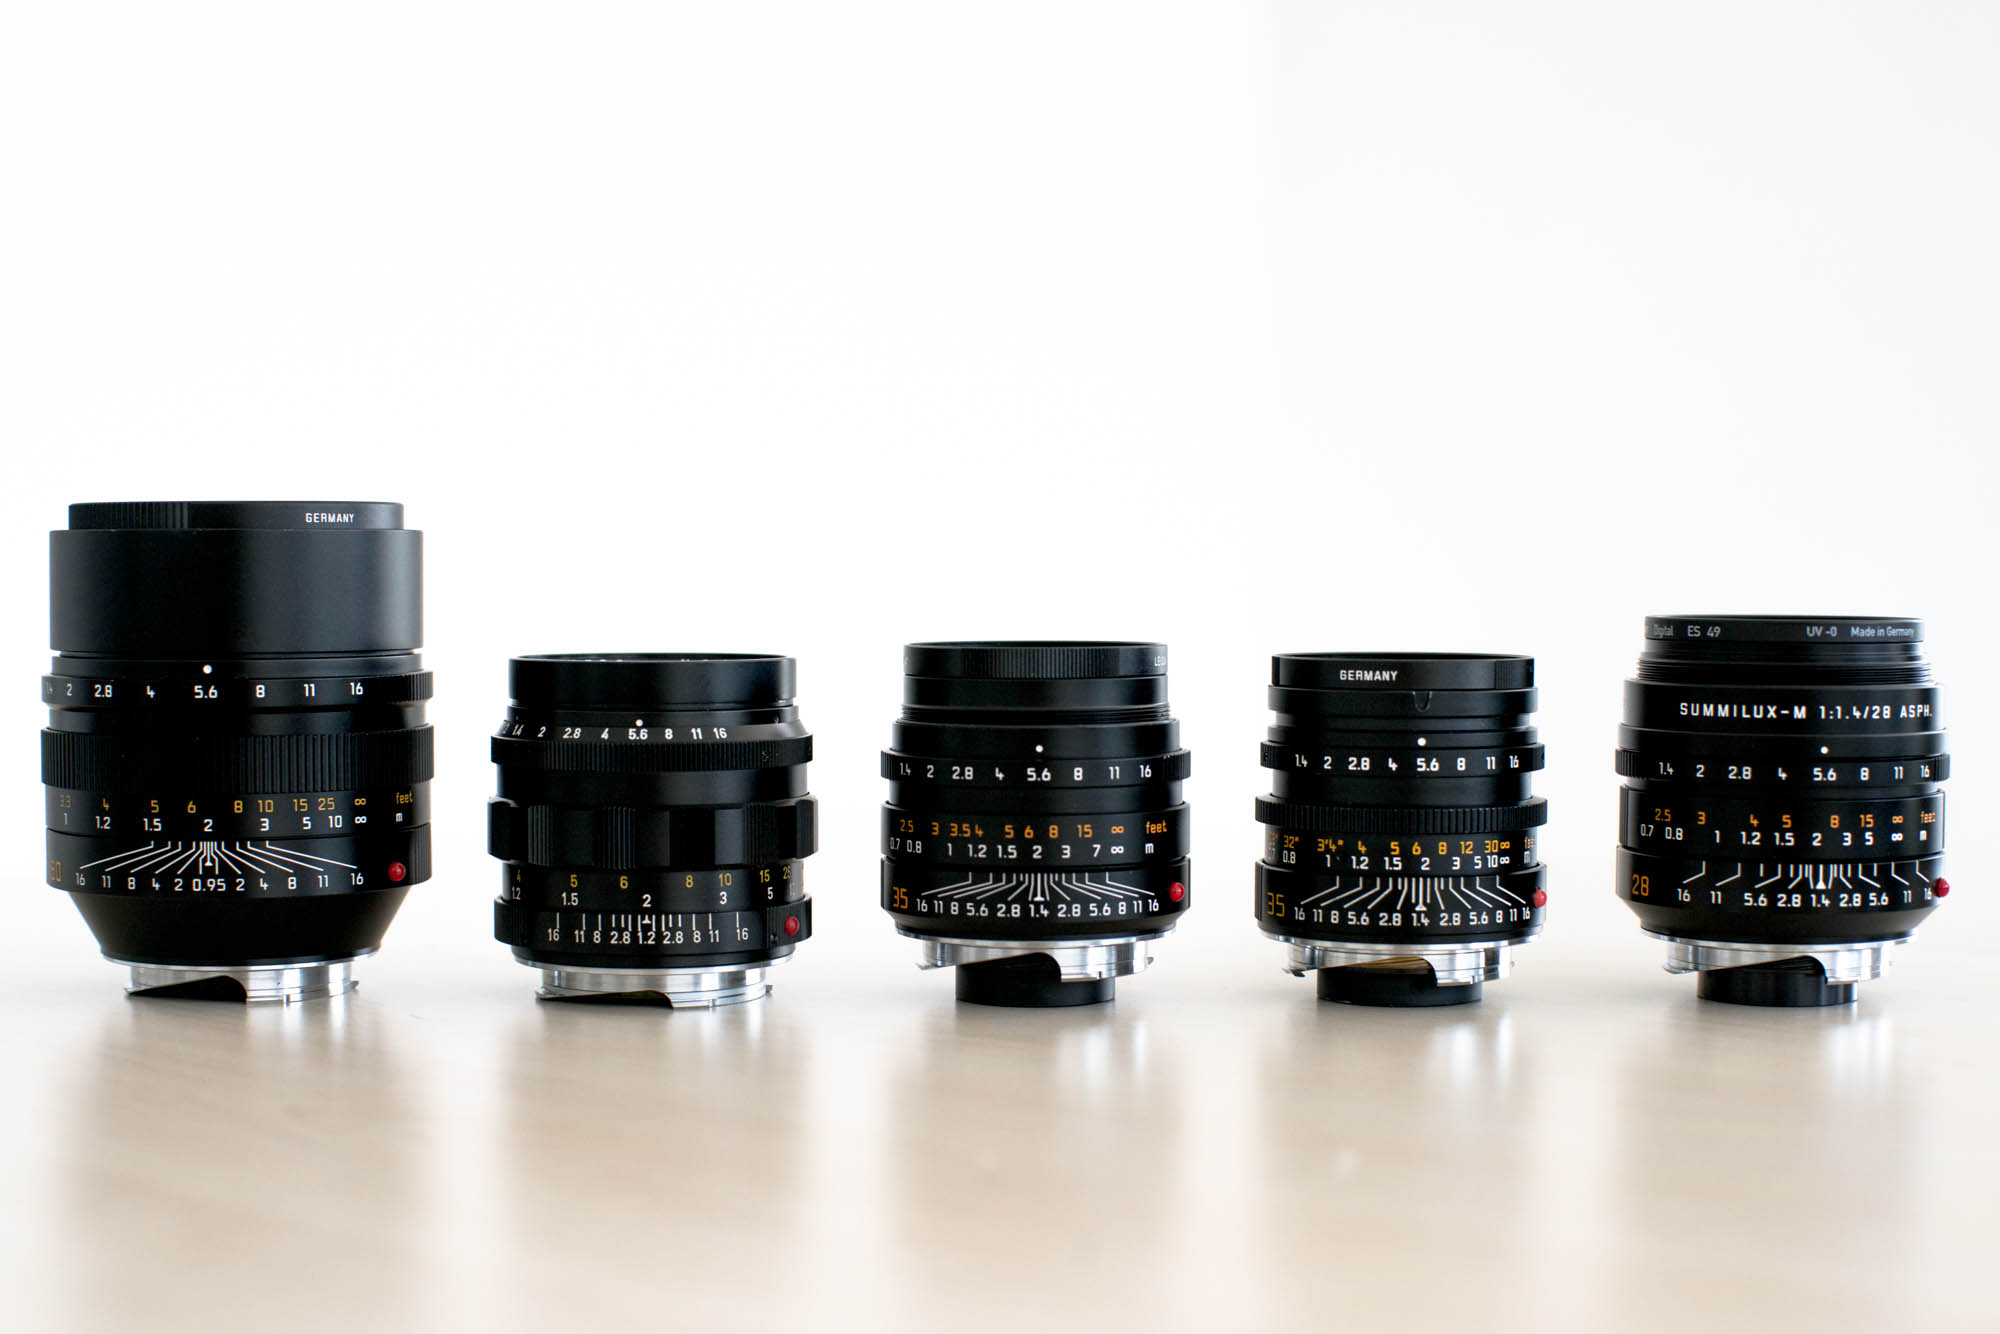 From Left to Right: Leica's 50mm f/0.95 Noctilux, 50mm f1.2 Noctilux, 35mm f/1.4 Summilux FLE, 35mm f1.4 Summilux AA, and 28mm f/1.4 Summilux